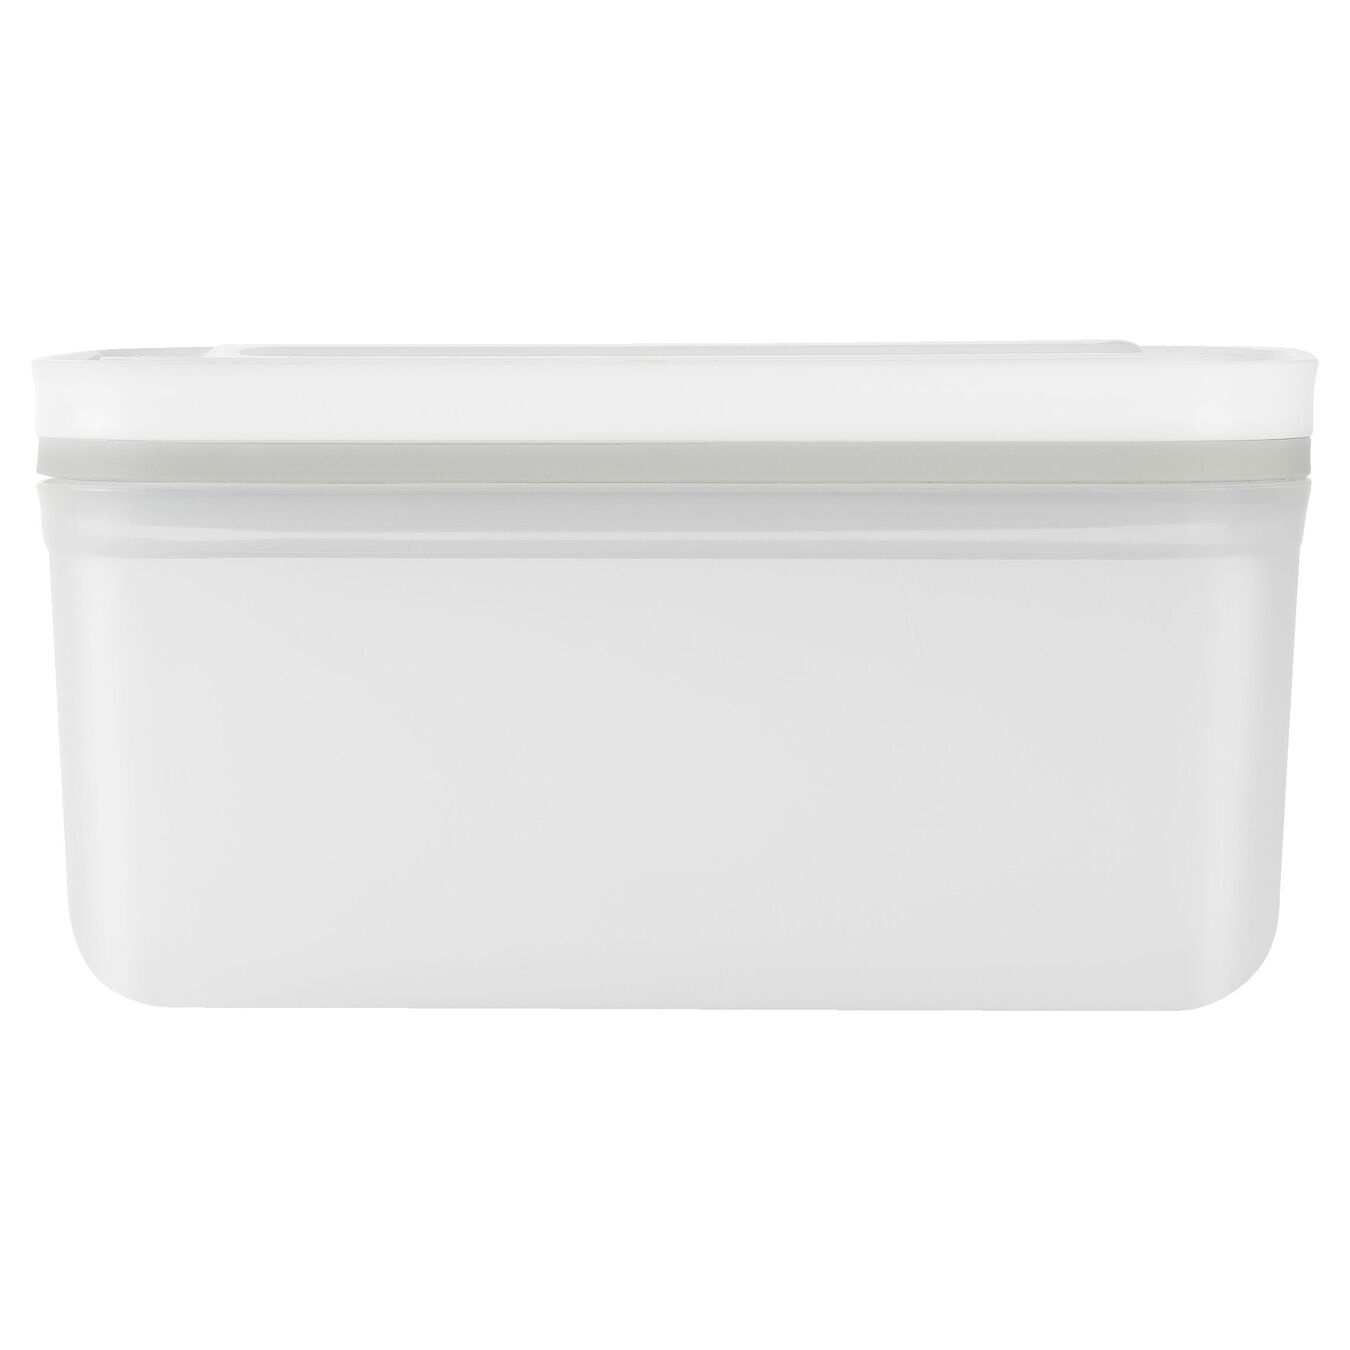 medium Vacuum box, Plastic, white,,large 3